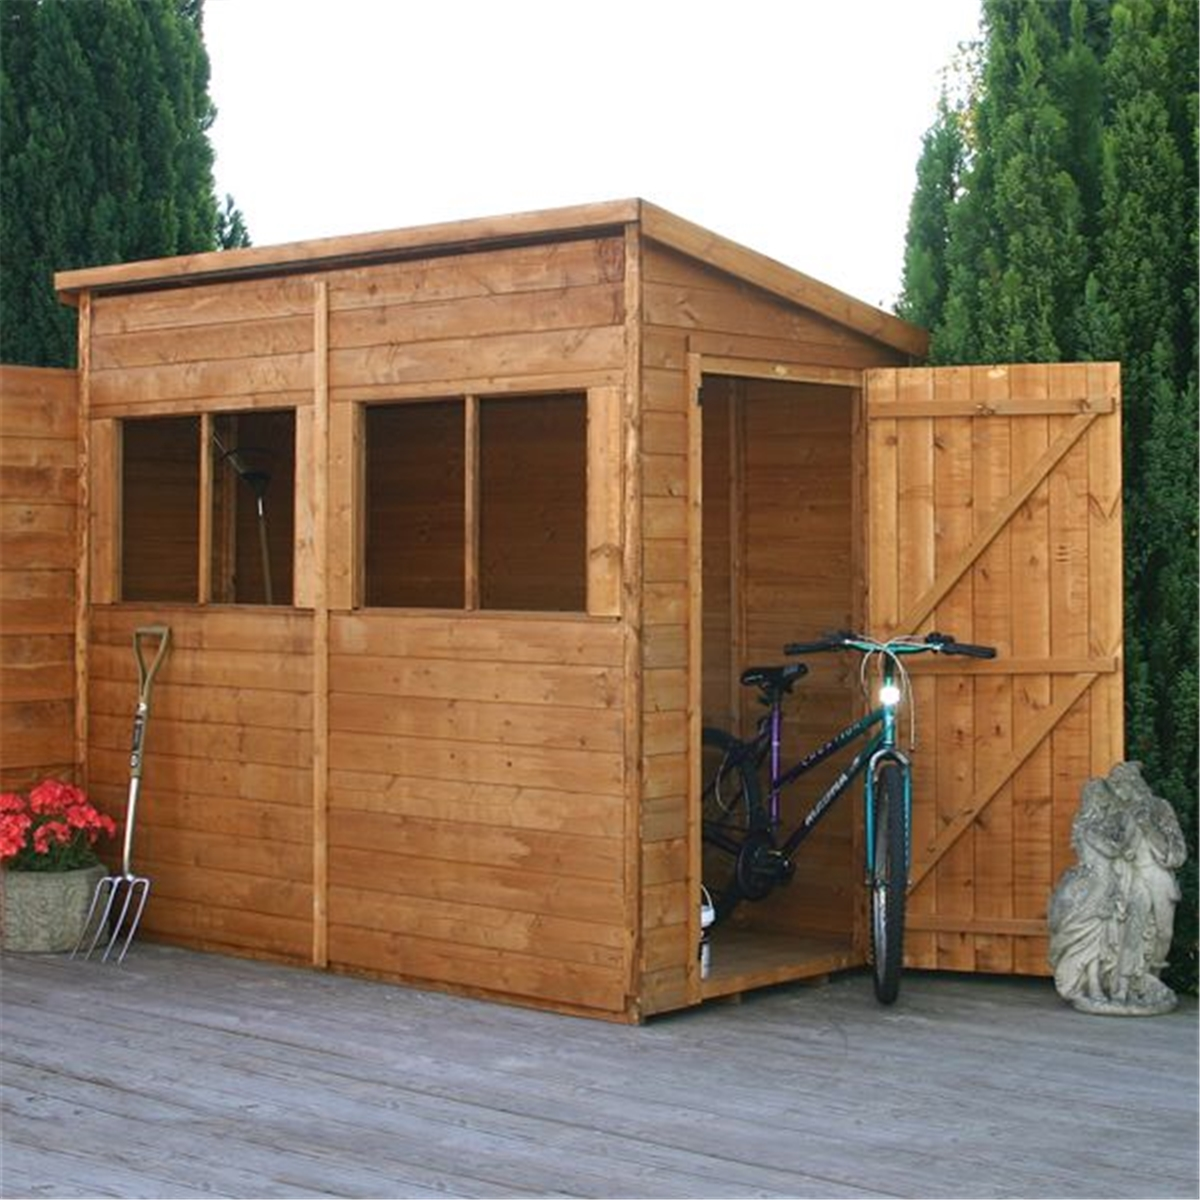 8 x 4 premier tongue and groove pent shed with 4 windows for Plastic pent shed